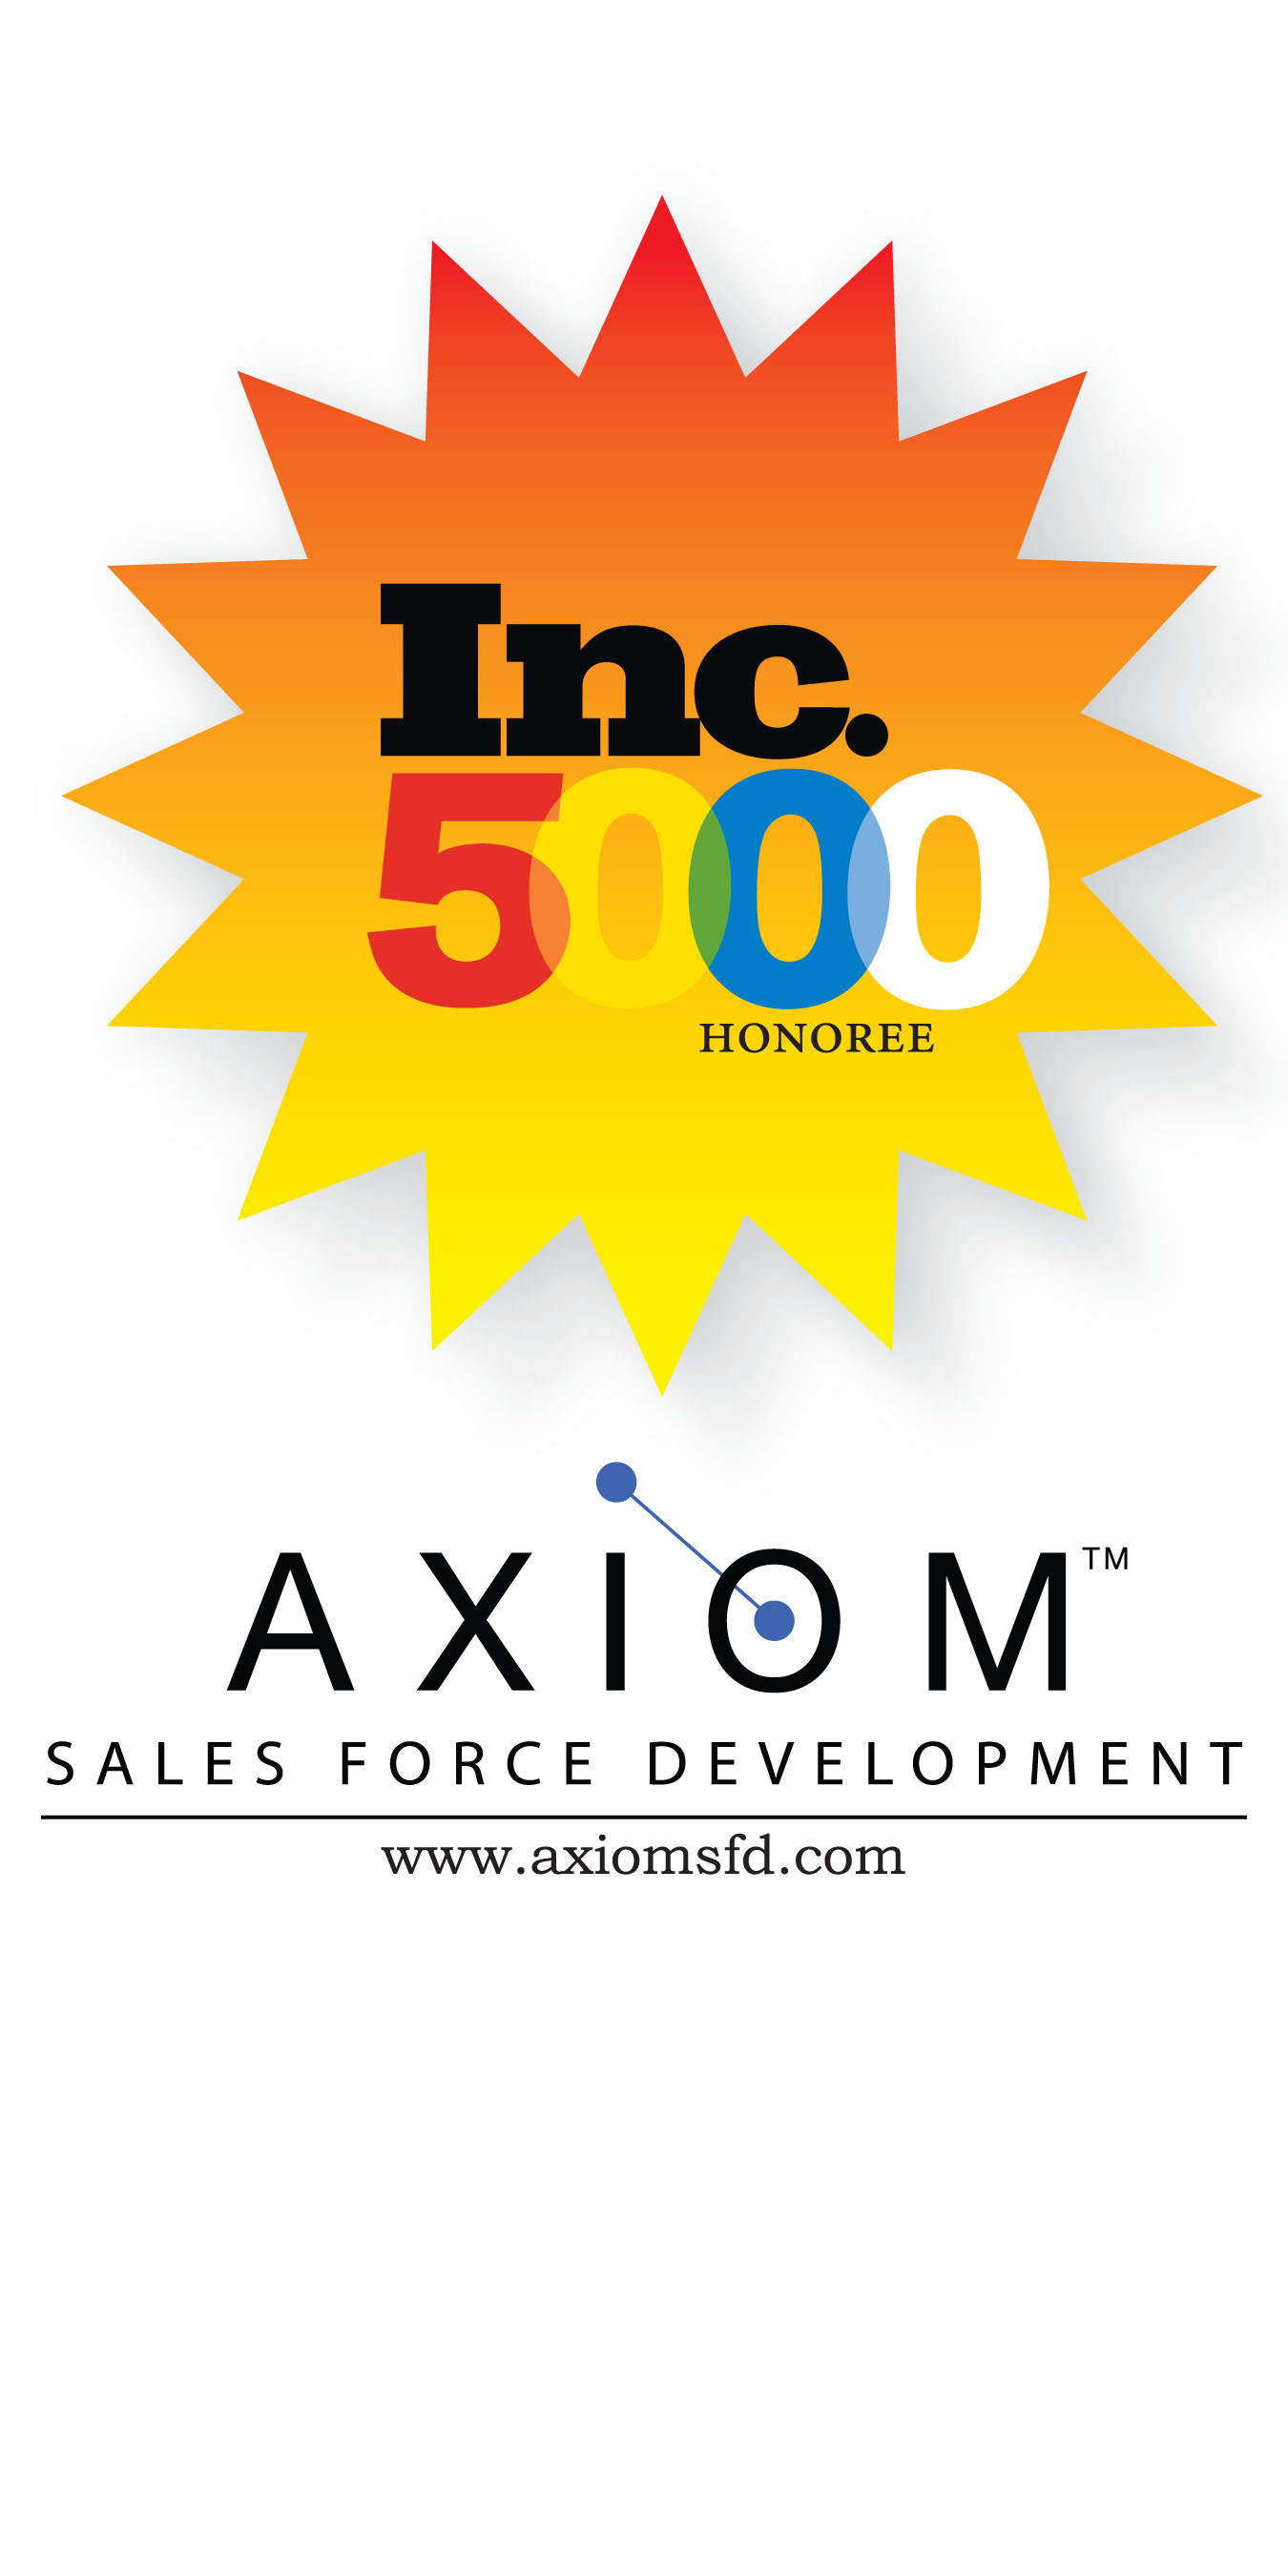 Inc. magazine ranks AXIOM Sales Force Development No. 33 Fastest Business Products & Services in the State of Texas. (PRNewsFoto/AXIOM Sales Force Development) (PRNewsFoto/AXIOM SALES FORCE DEVELOPMENT)